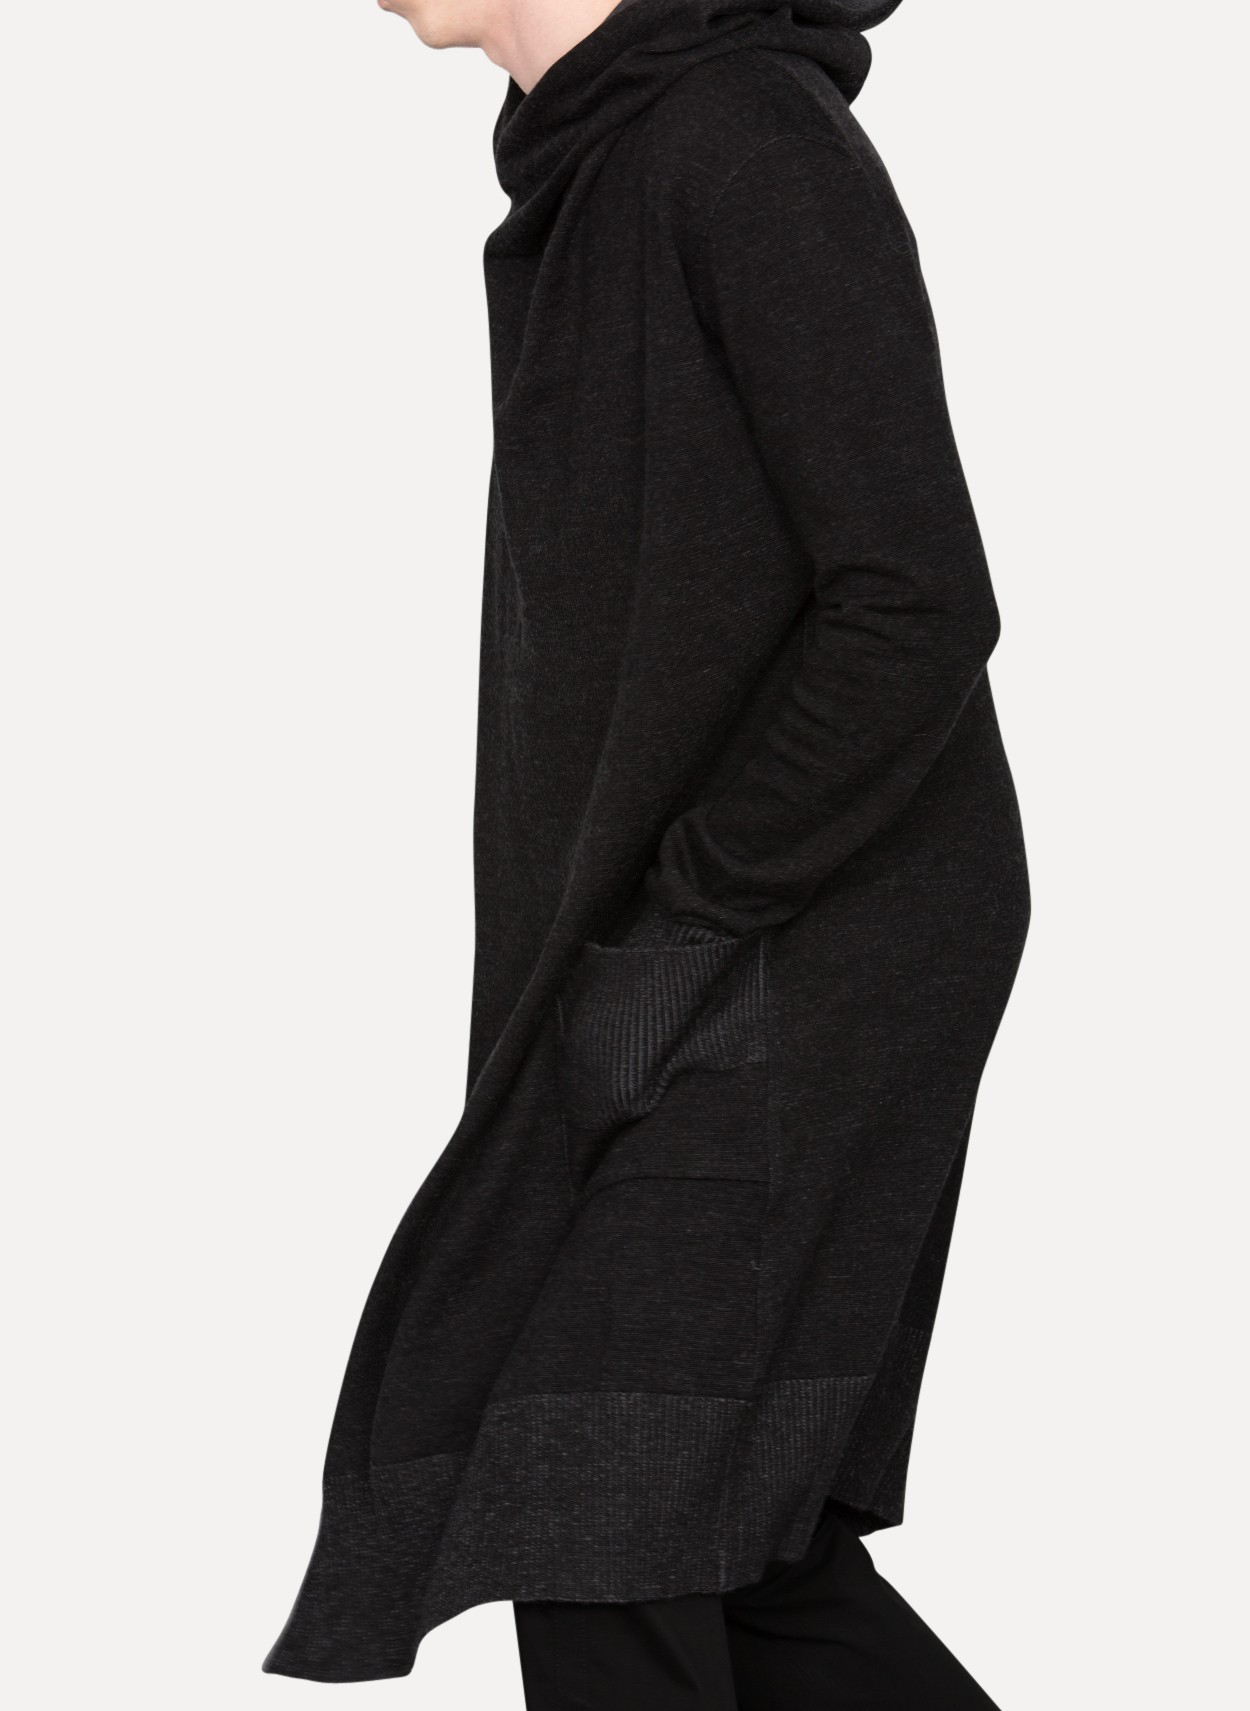 Daniel andresen Sula Long Hooded Cardigan in Black for Men | Lyst